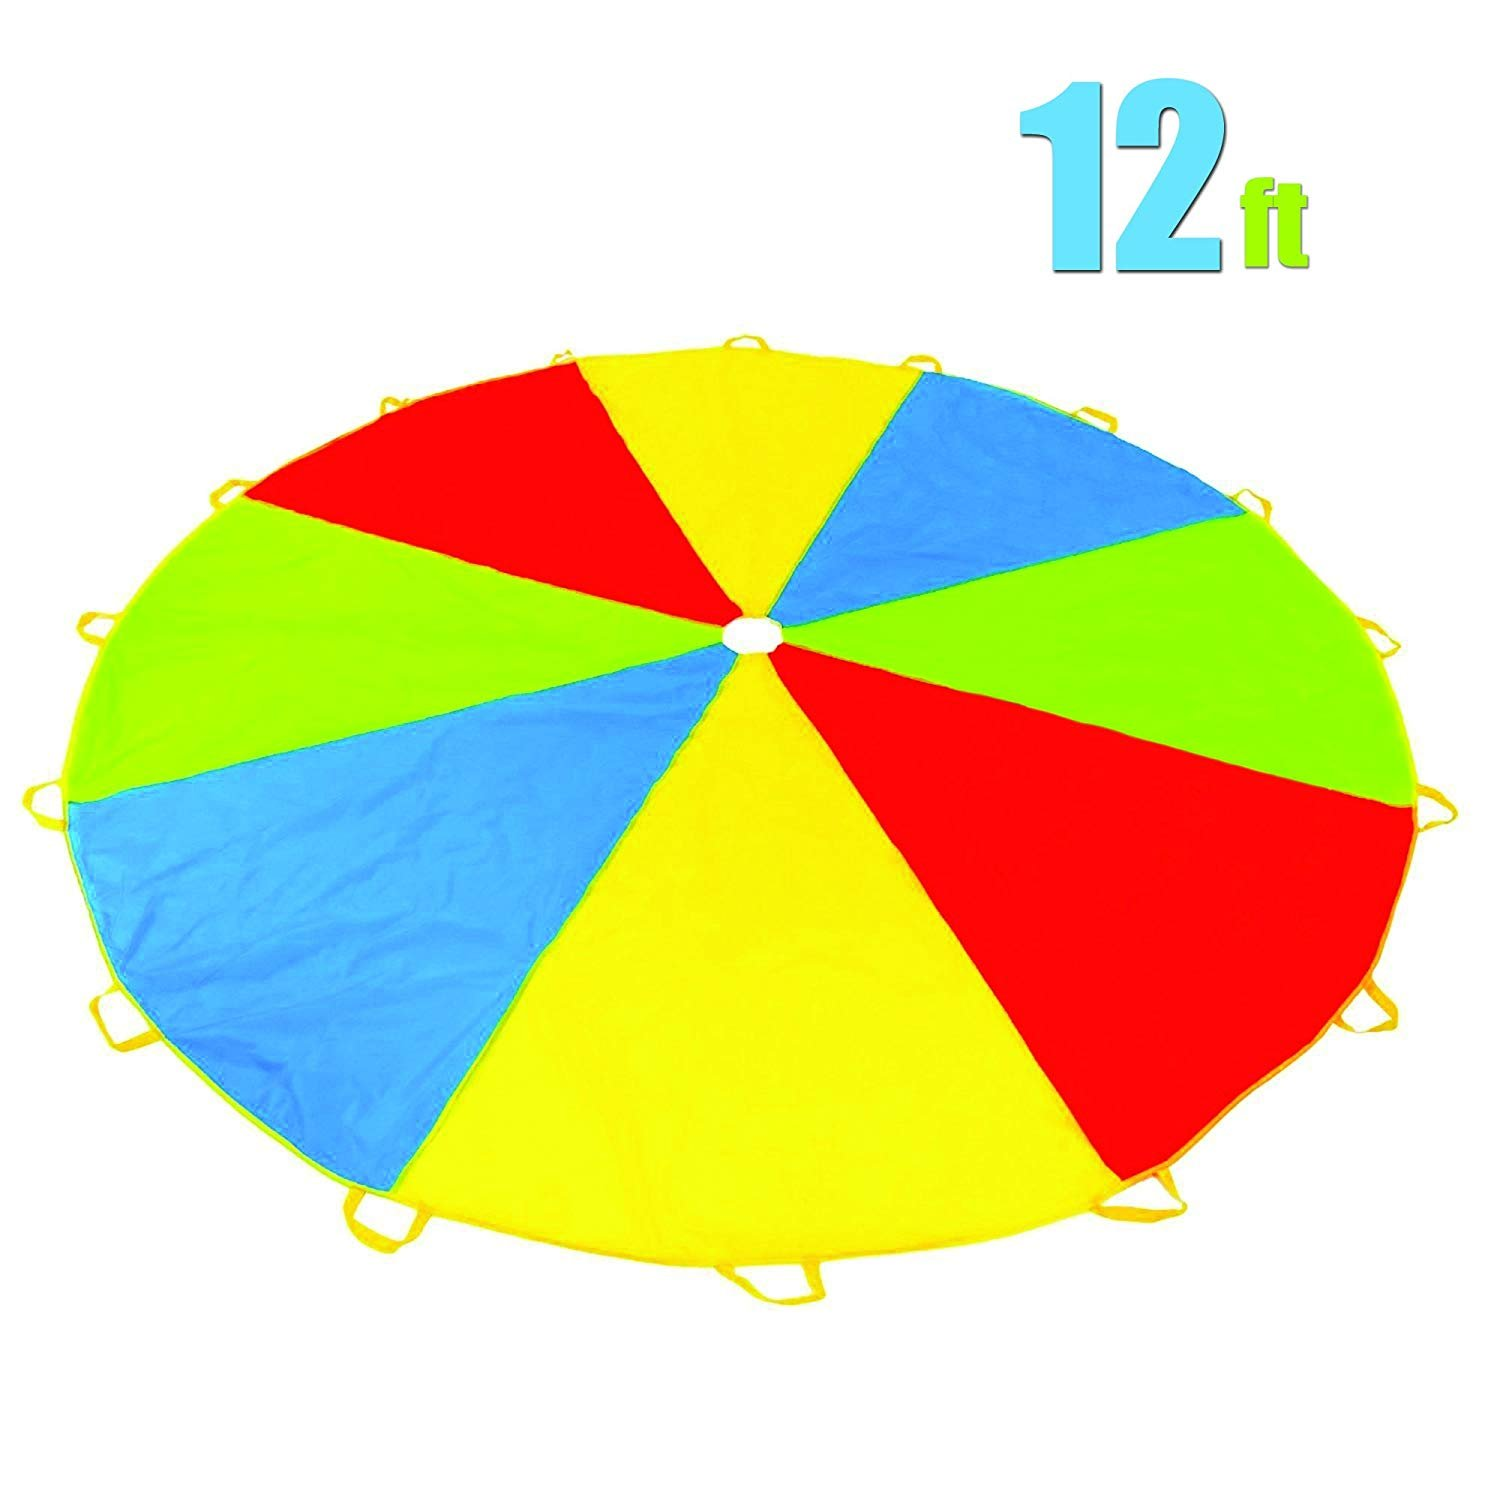 3.7m Play Parachute with 16 Handles - New & Improved Design - Multicoloured Parachute for Kids B01MZZO1S8